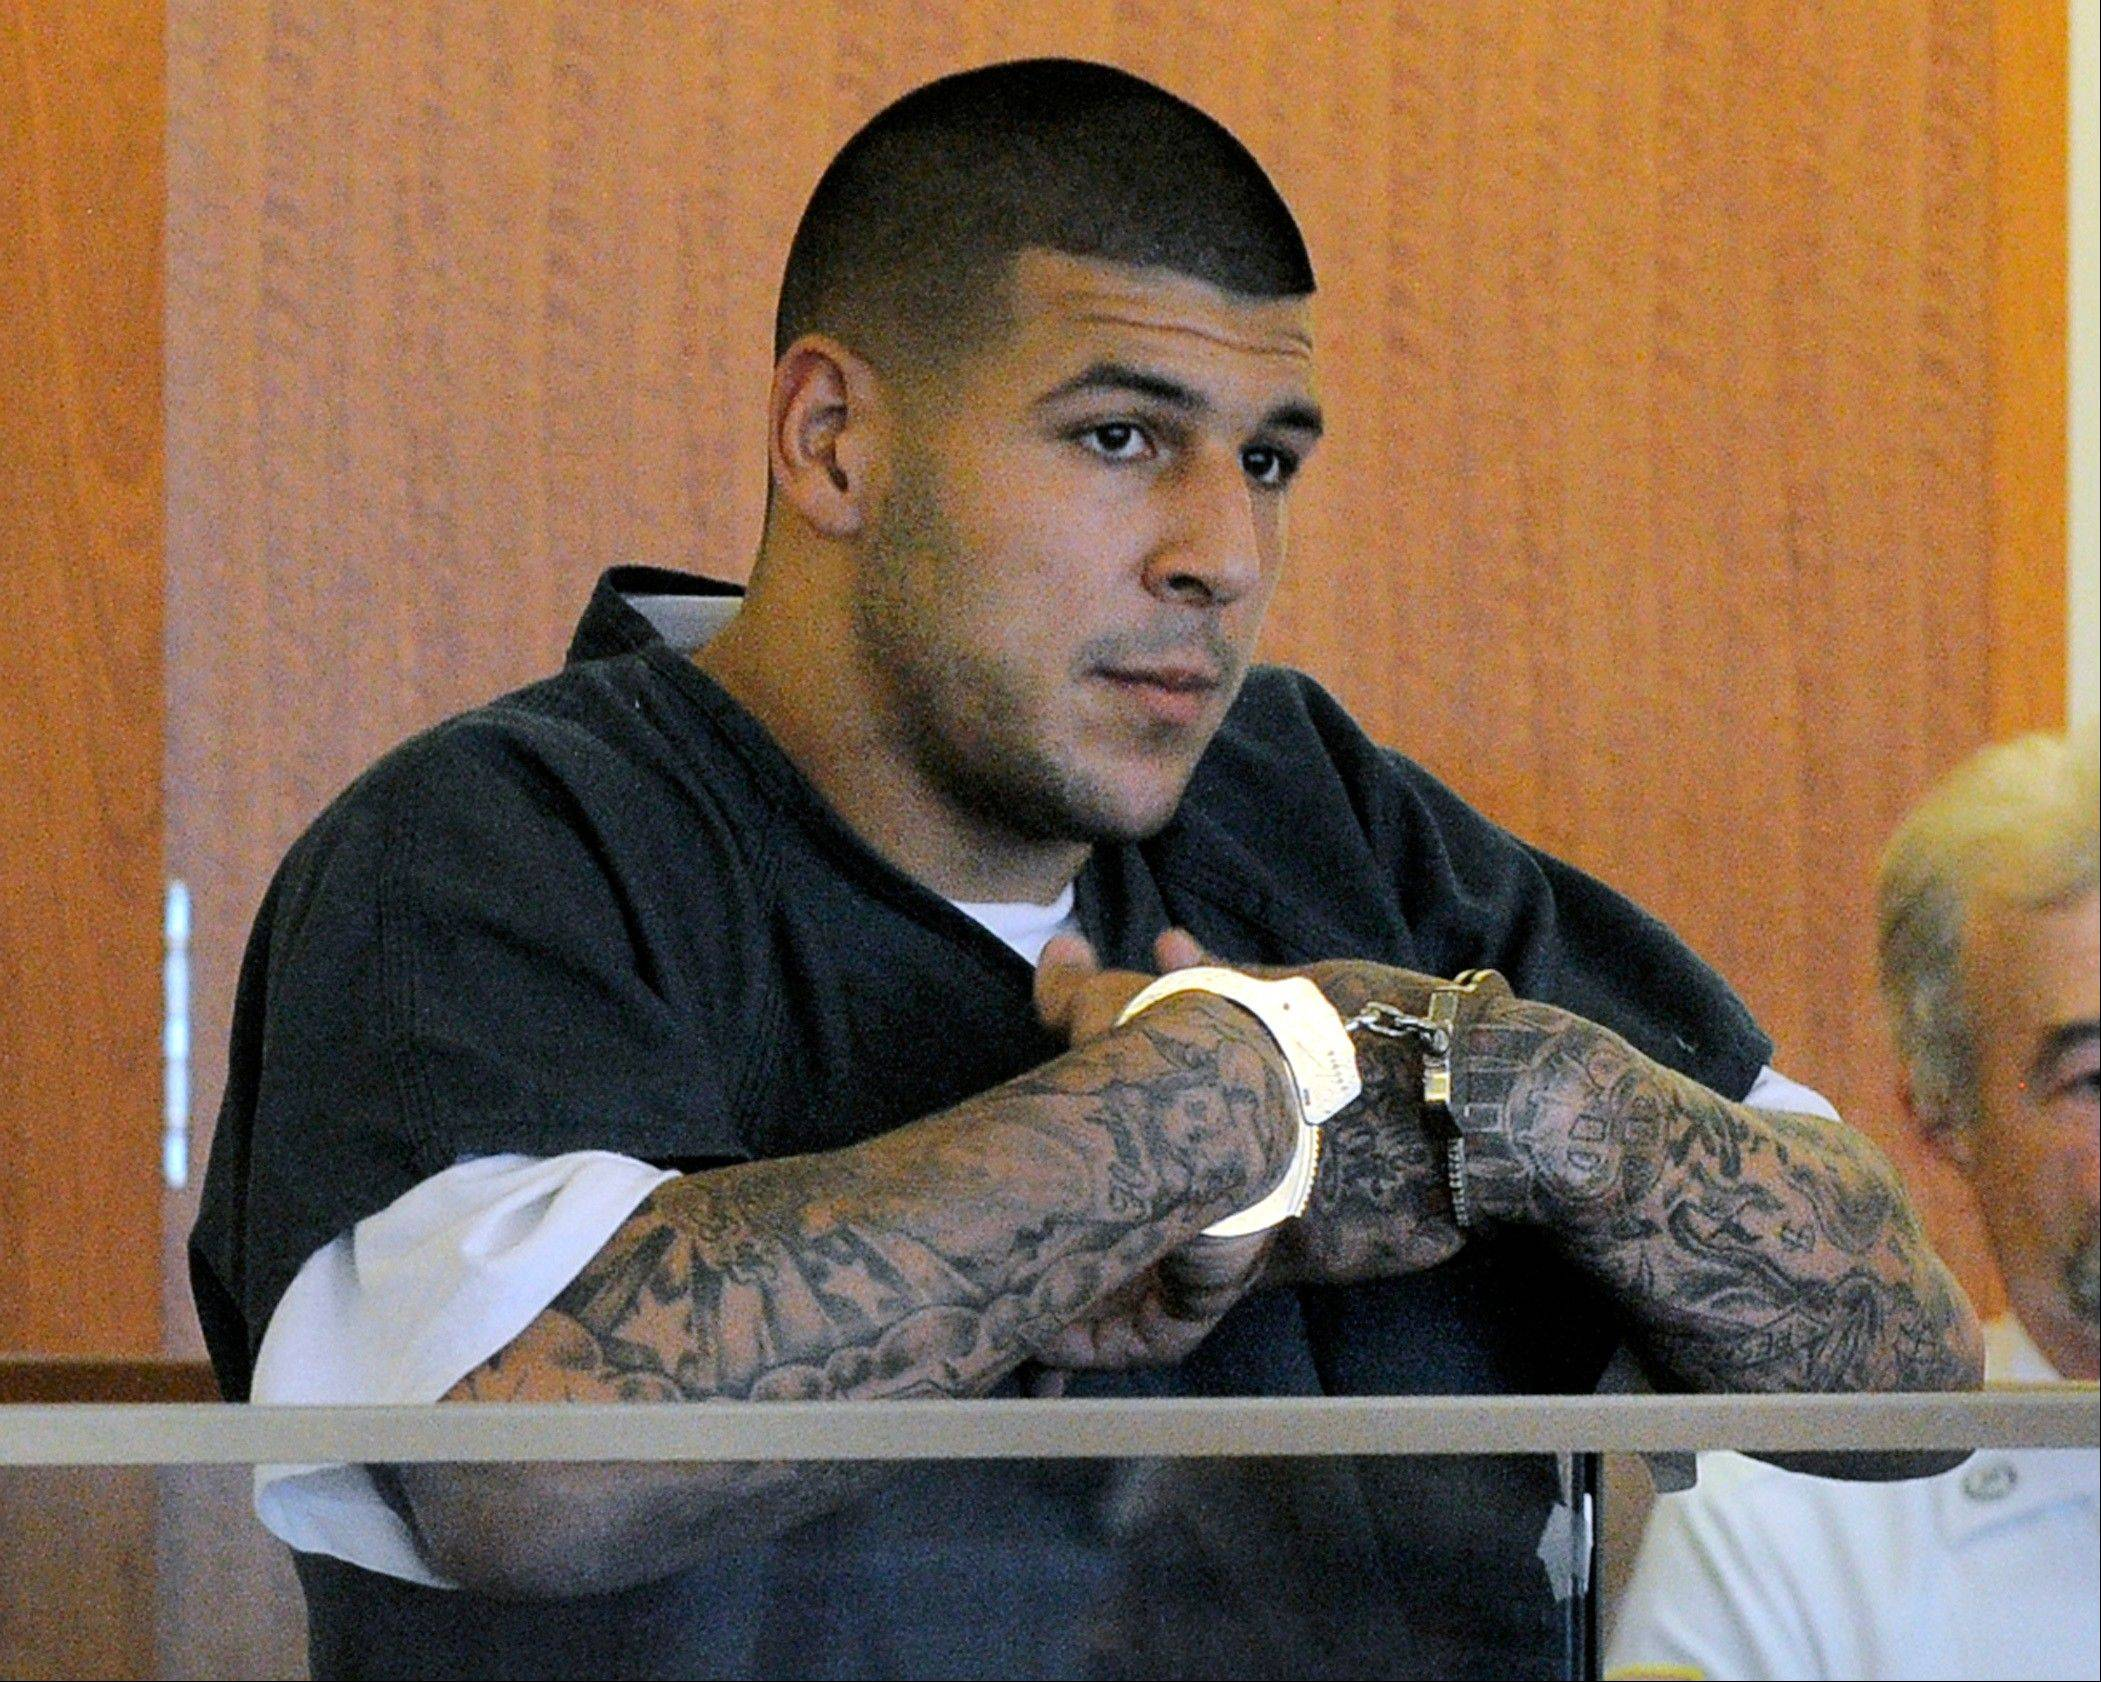 An associate of former New England Patriots tight end Aaron Hernandez said he was told Hernandez fired the shots that resulted in the death of a semipro football player, according to documents filed in Florida. The records say Hernandez associate Carlos Ortiz told Massachusetts investigators that another man, Ernest Wallace, said Hernandez shot Lloyd in an industrial park near Hernandez�s home in North Attleborough.